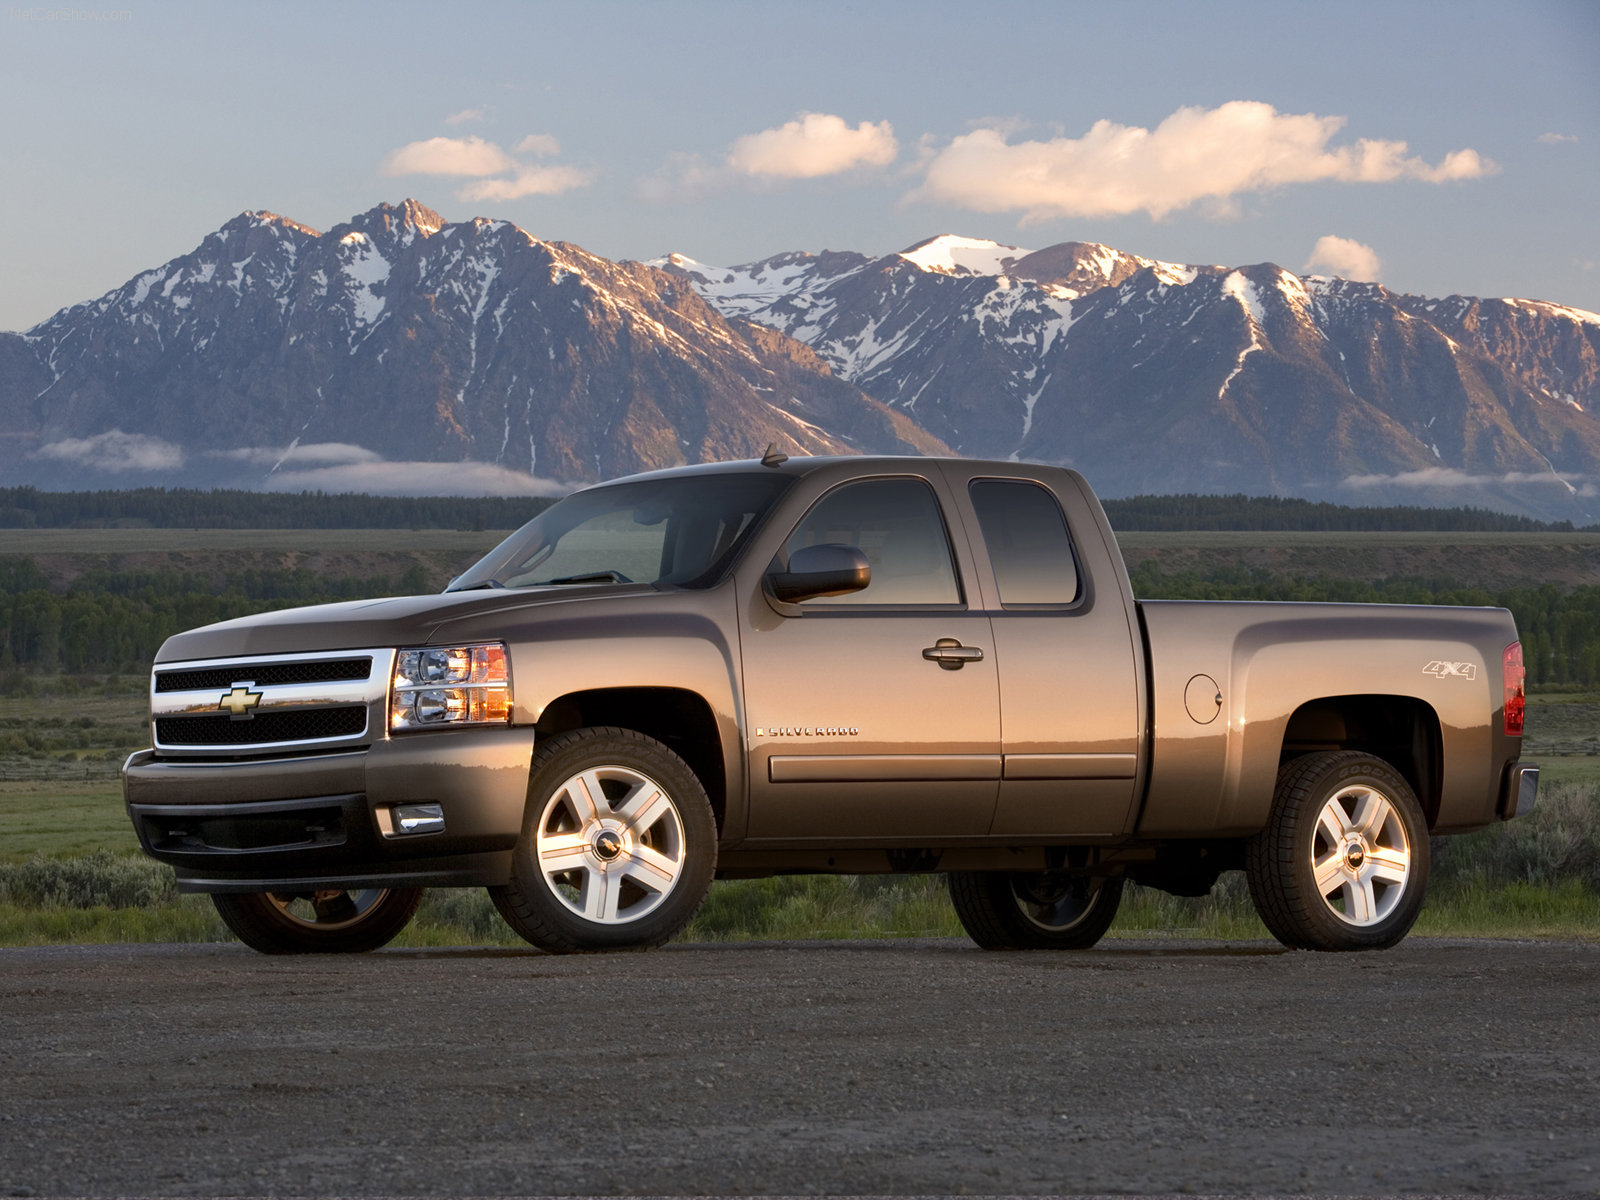 Chevrolet Silverado Extended Cab photo 37535